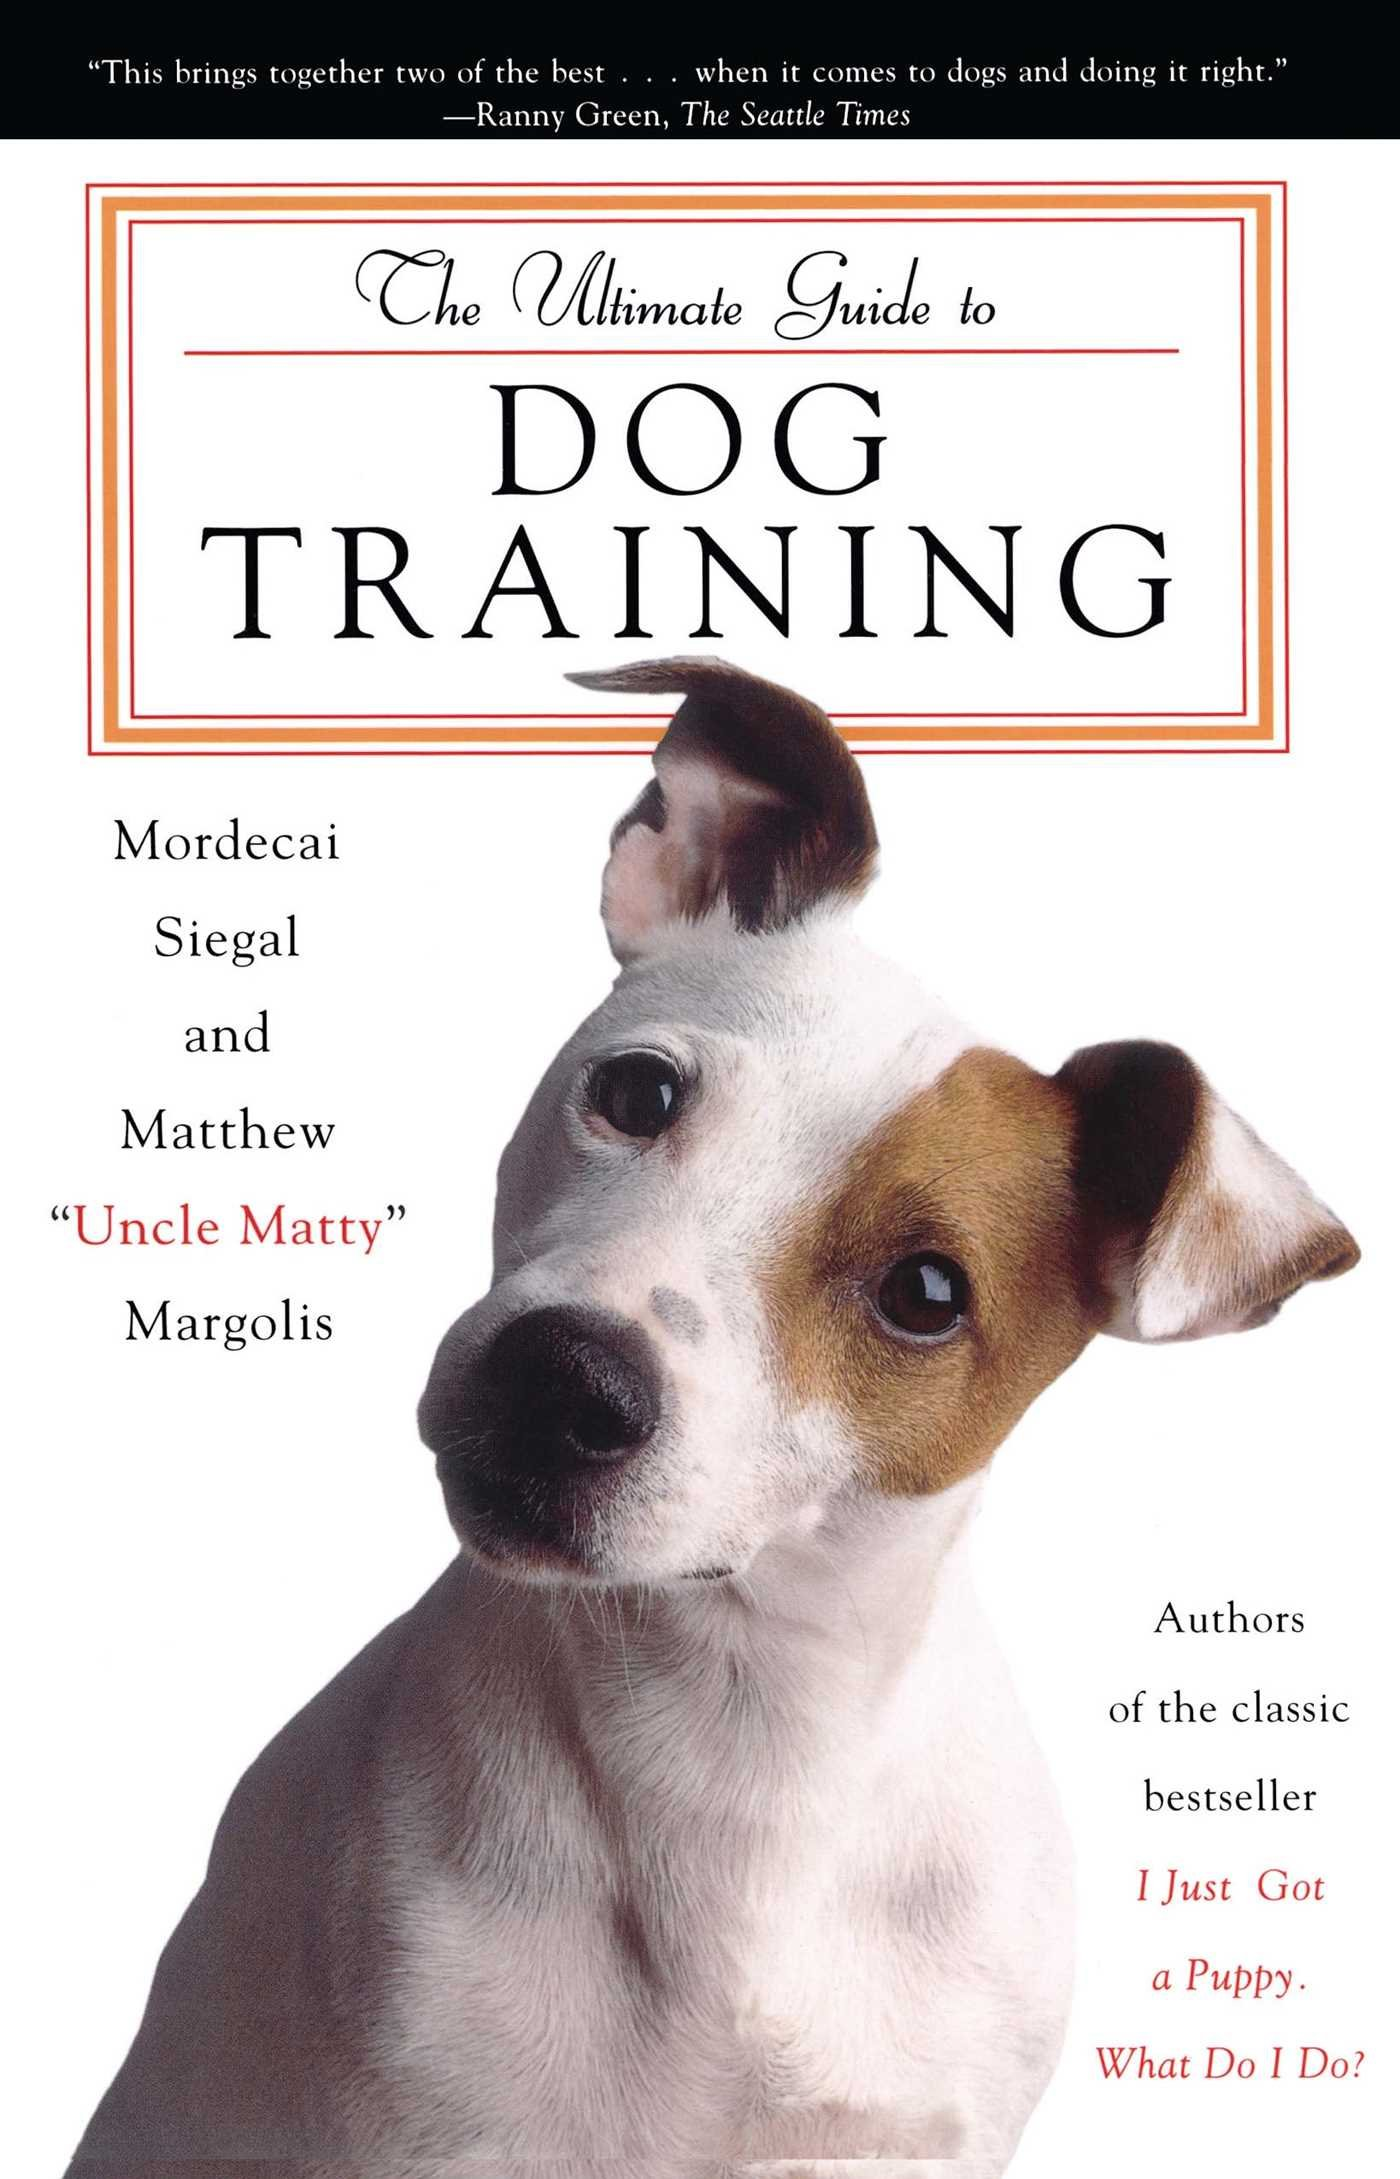 The Ultimate Guide To Dog Training: Mordecai Siegal, Matthew